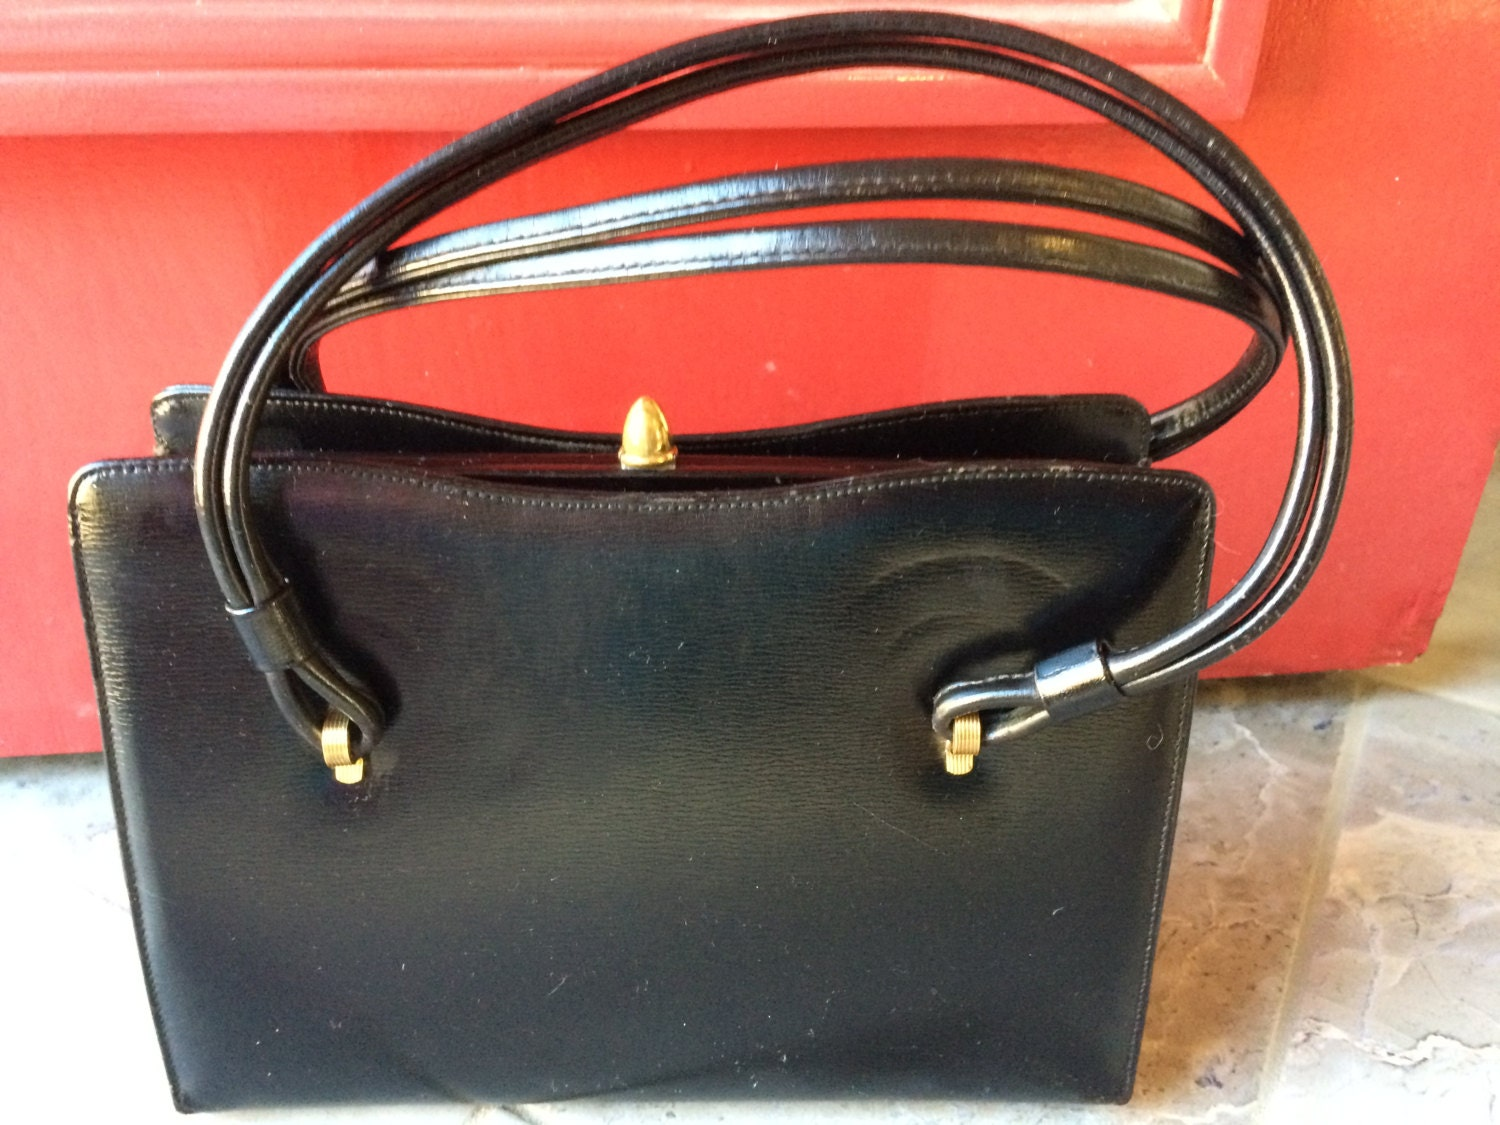 35e2cc7bd550 Vintage Susan Gail Original Black Kelly Handbag